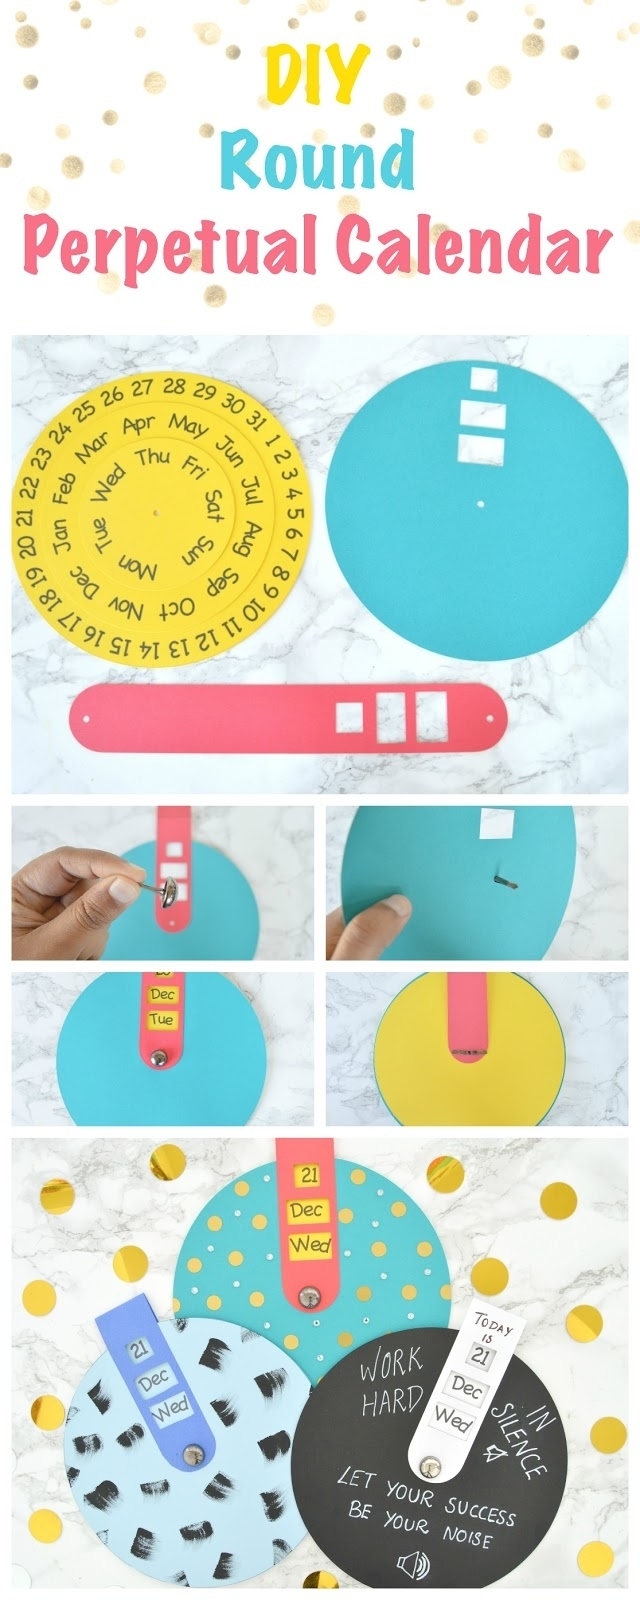 Vikalpah: Diy Round Perpetual Calendar With Free Printable Template intended for Free Printable Perpetual Calendar Templates